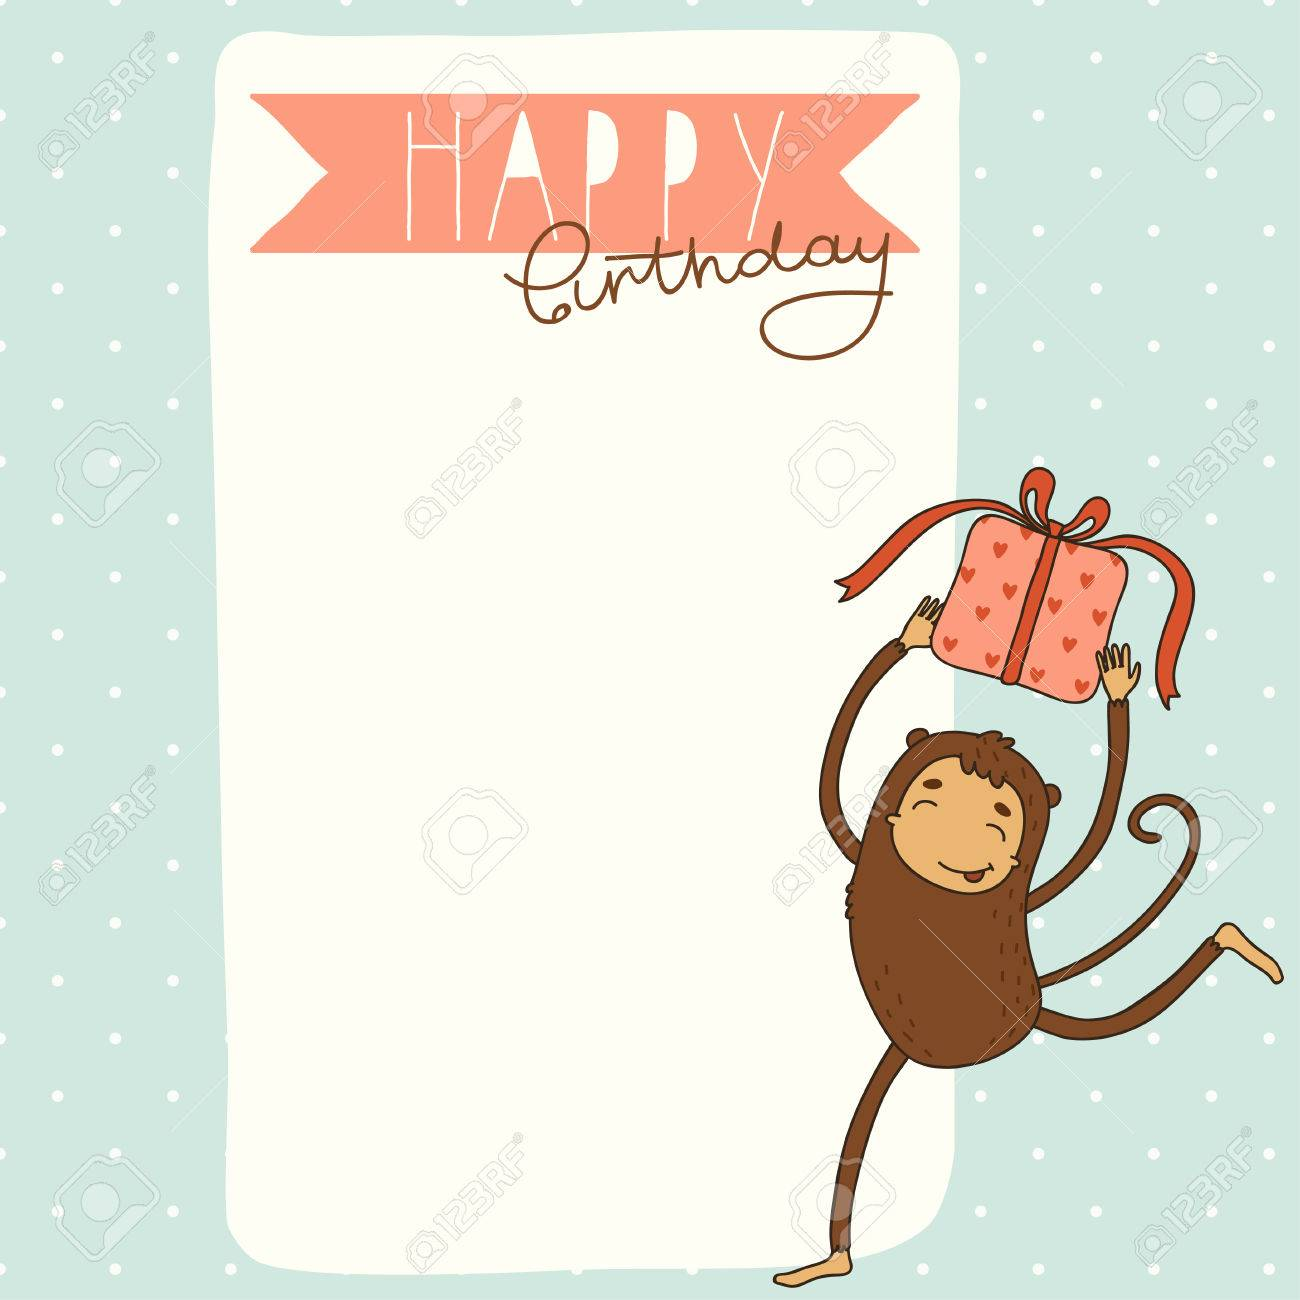 Happy Birthday Card Background With Monkey Stock Vector